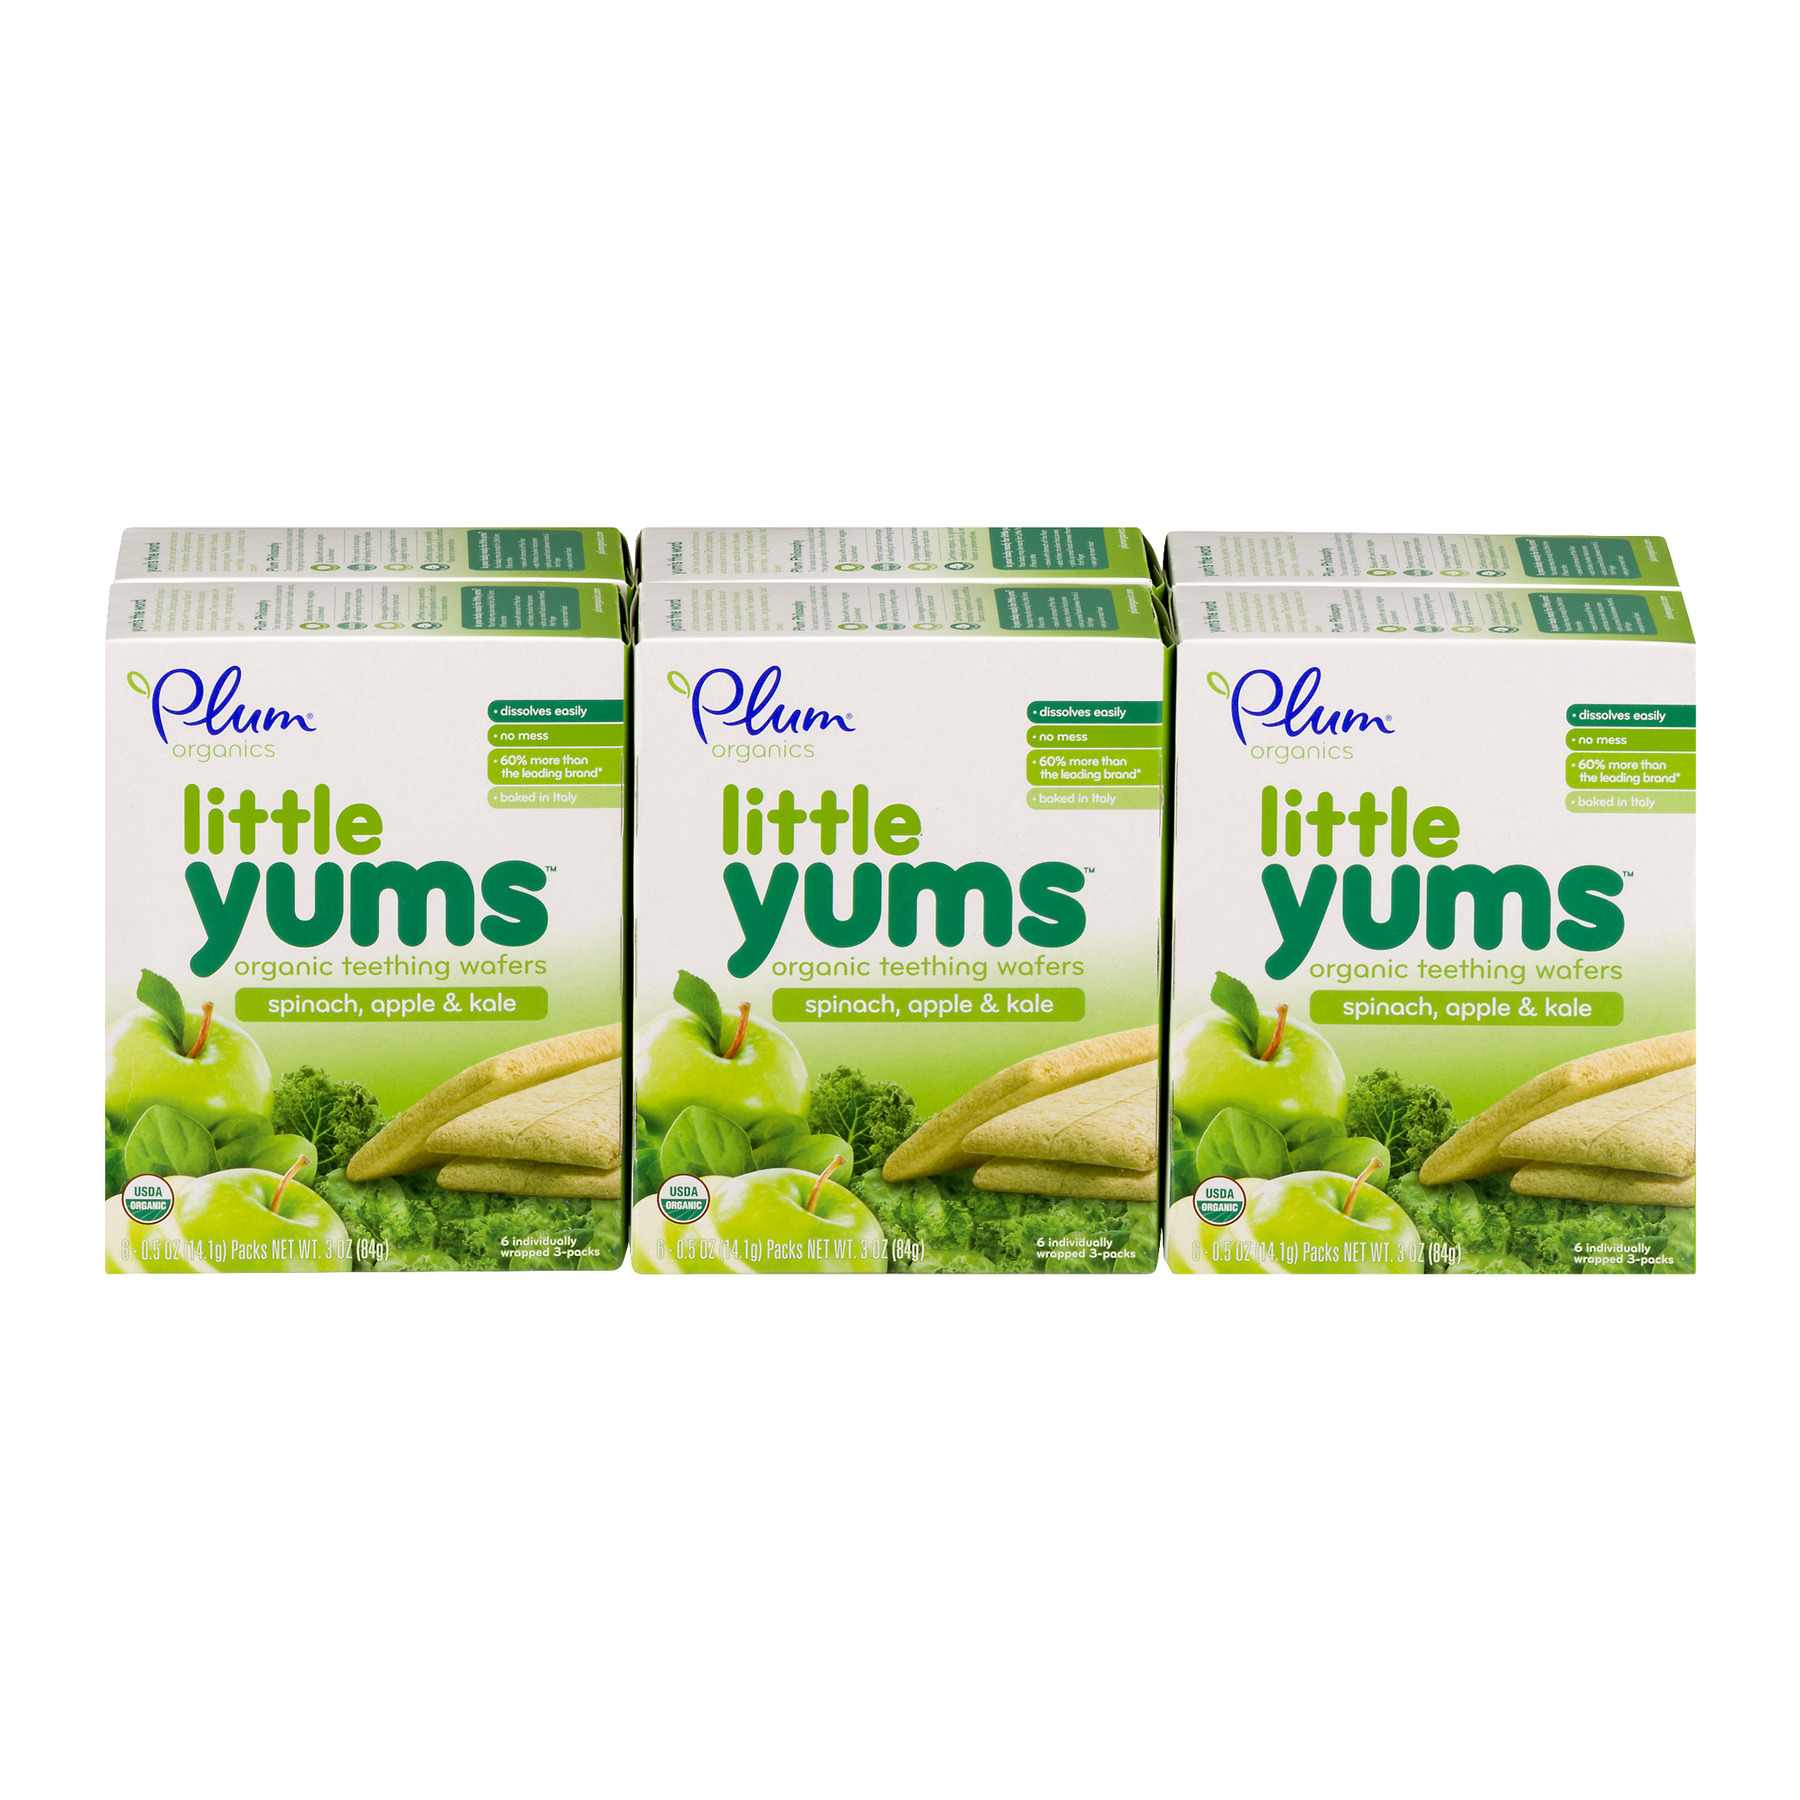 Plum Organics Little Yums Spinach, Apple & Kale Organic Teething Wafers, 0.5 oz, 6 count (Pack of 6)